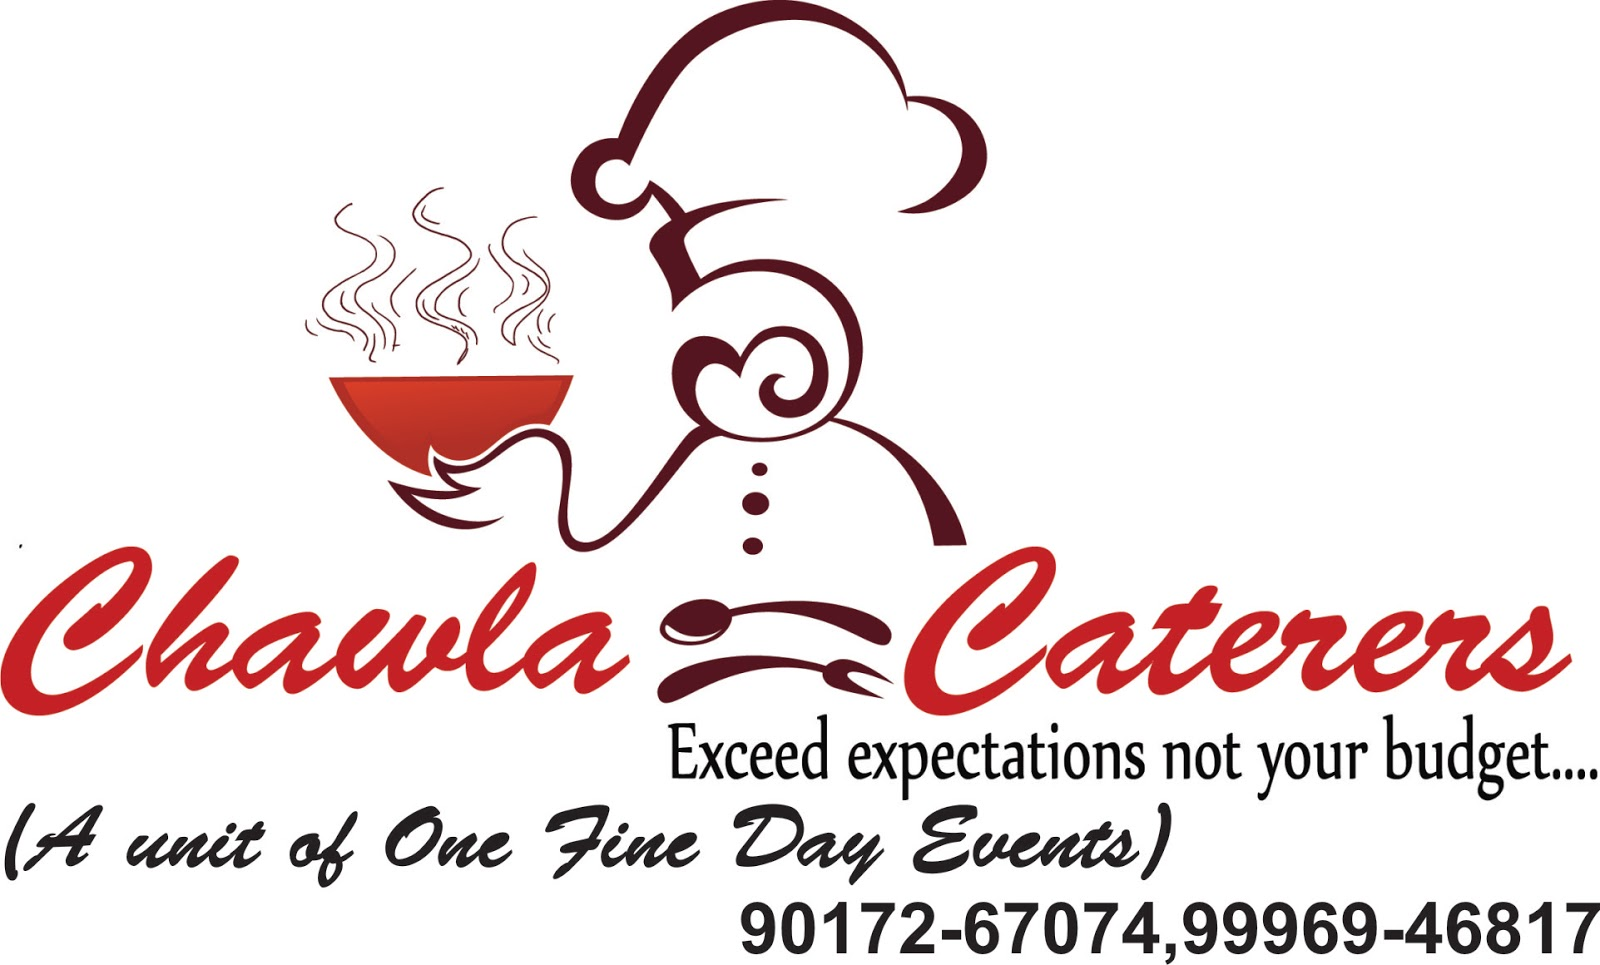 Chawla-Catering-Services-One-Fine-Day-Event